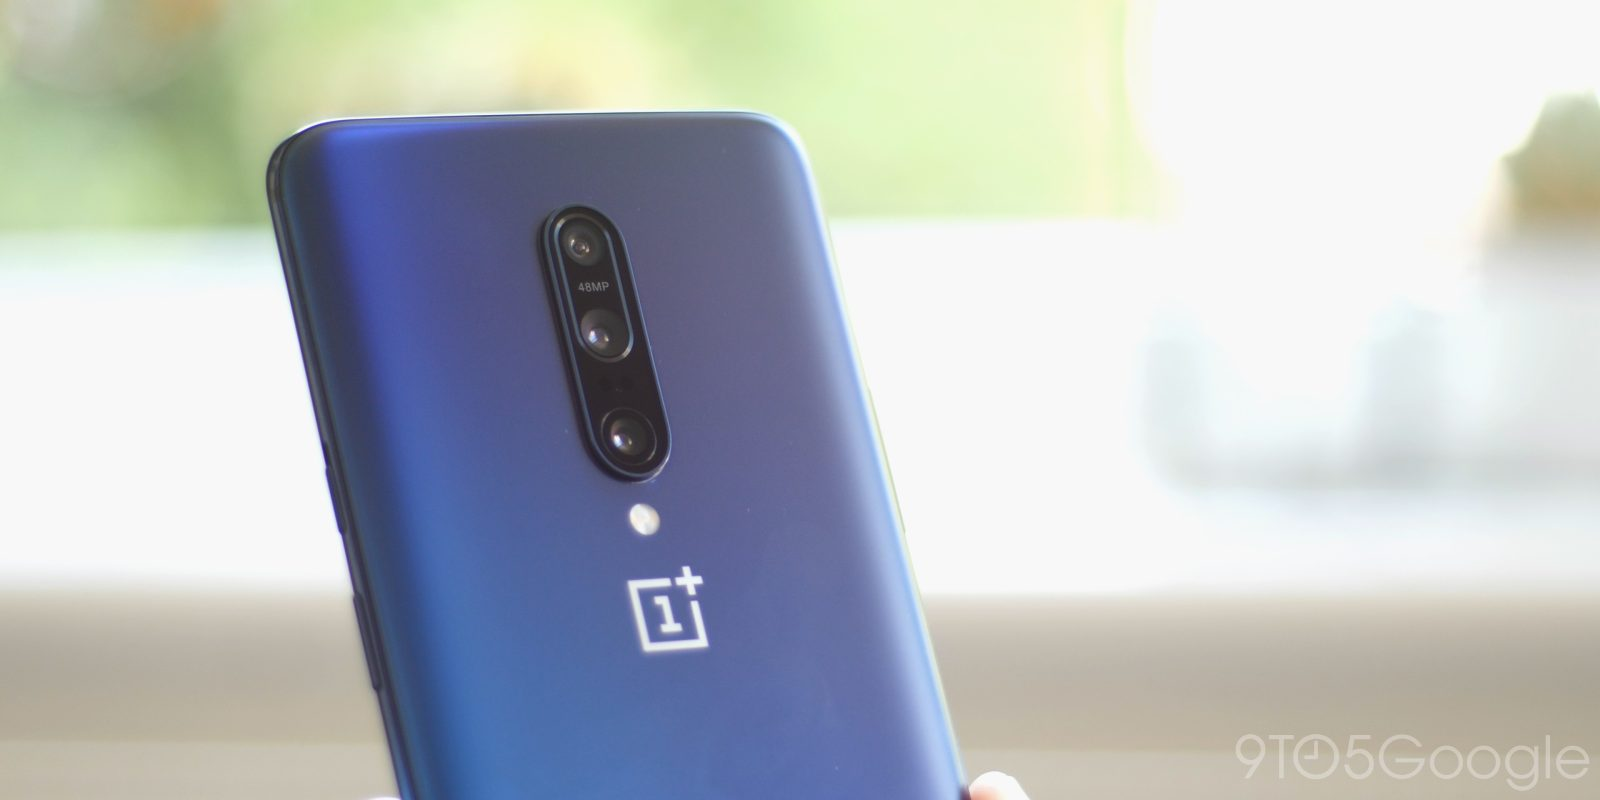 OnePlus 7T Pro tipped to launch w/ Android 10, slightly bigger battery